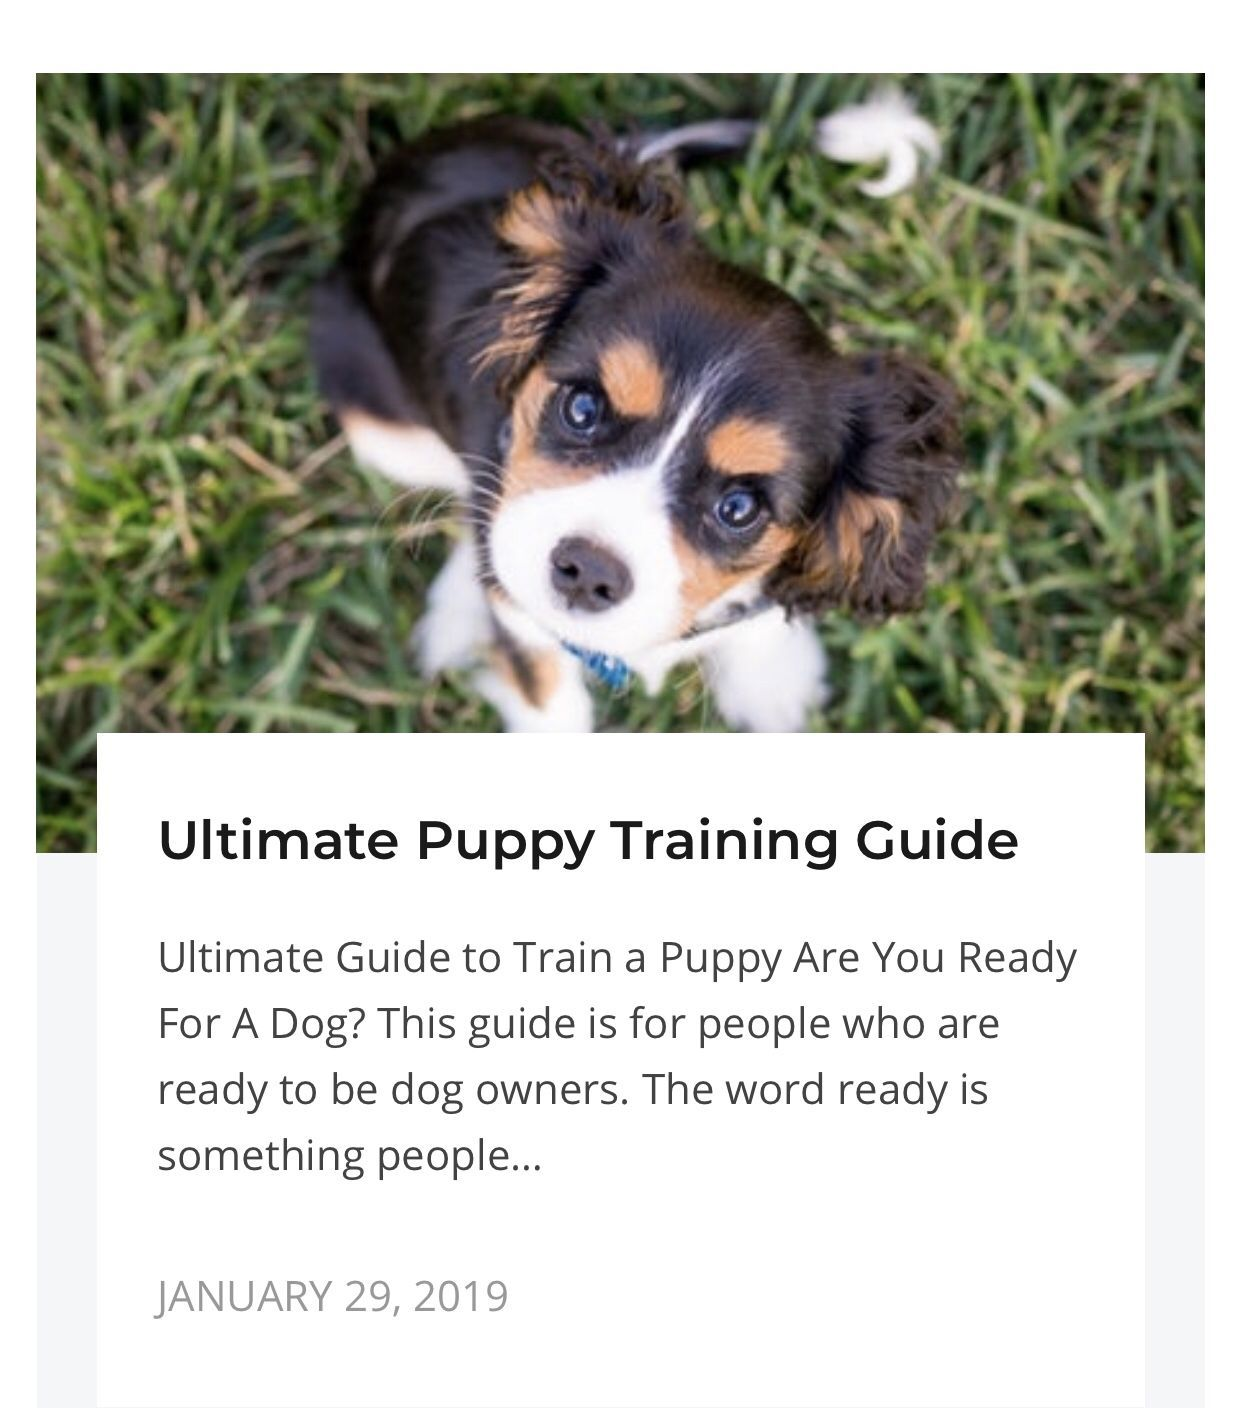 Ultimate Puppy Training Guide Puppy Training Guide Puppy Training Dog Training Come